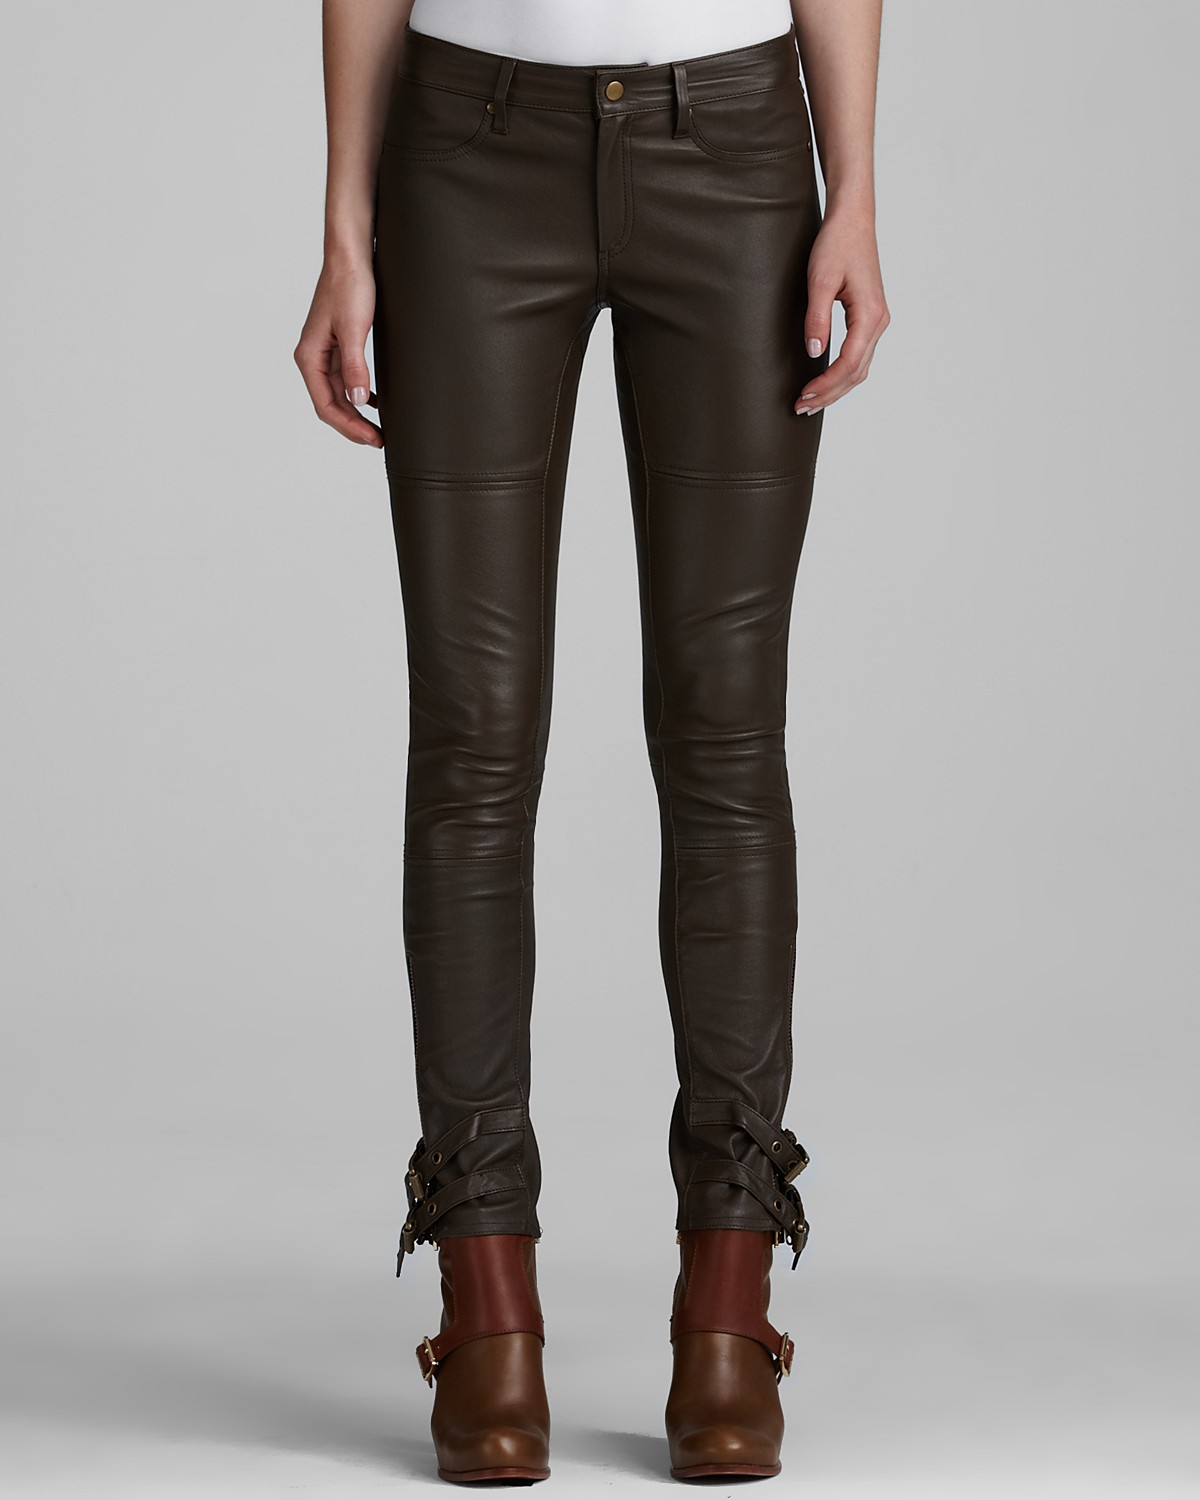 Rachel Zoe Pants - Suzie Belted Leather | Bloomingdale's